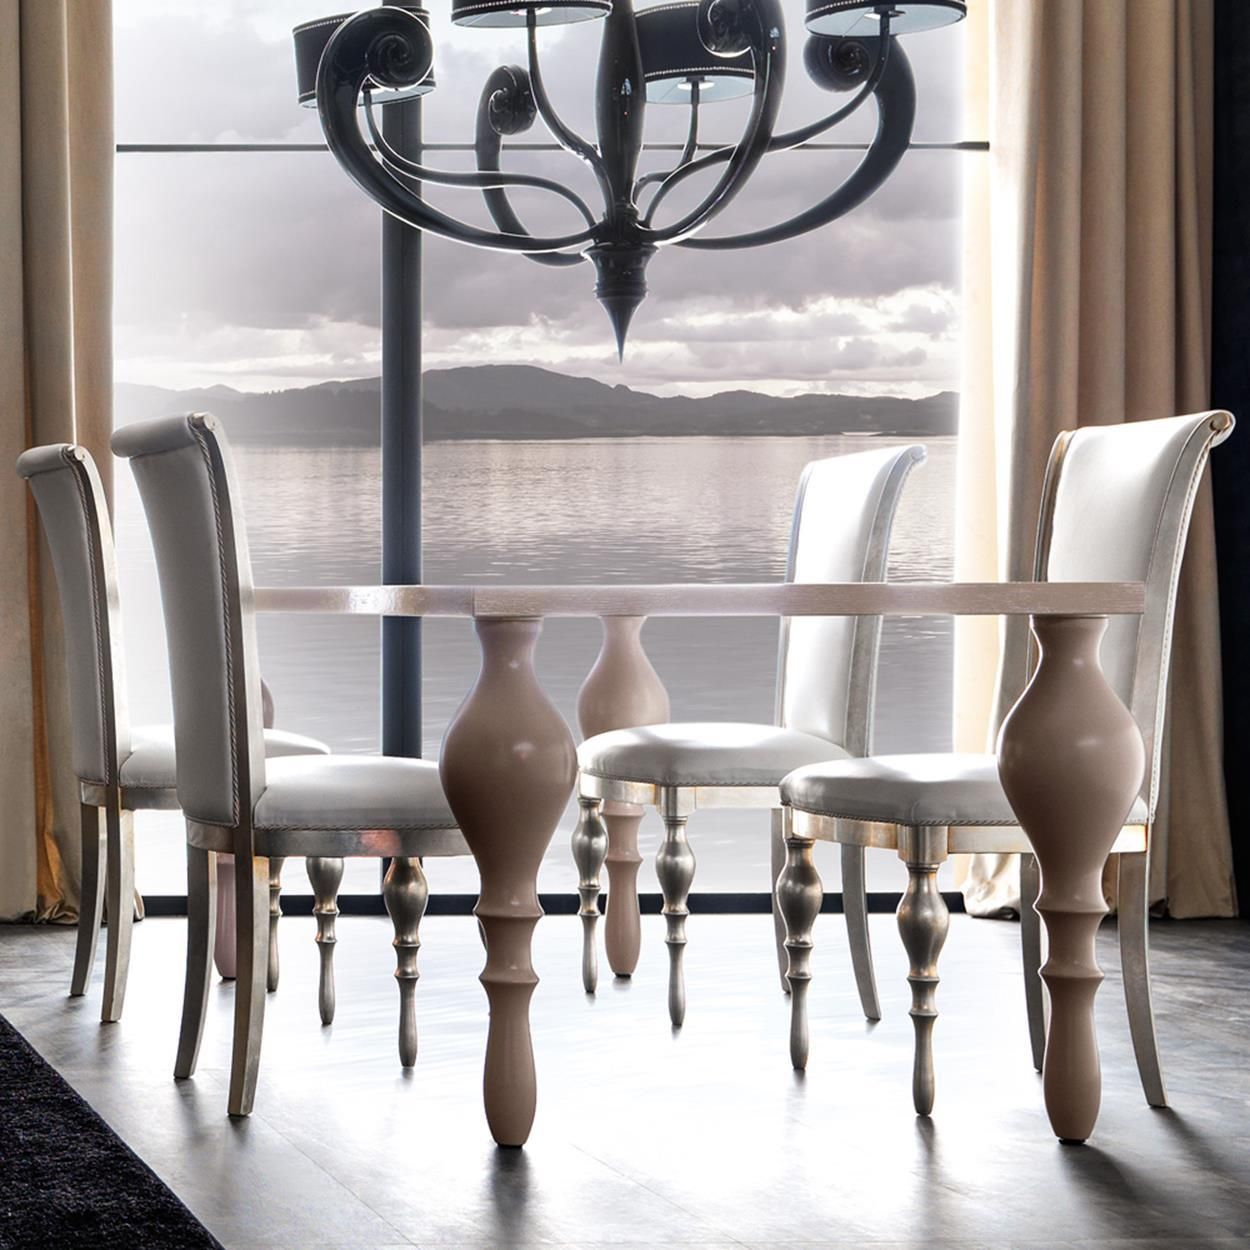 Magnificent 43 Luxury Modern Italian Dining Room Sets Ideas Furniture Uwap Interior Chair Design Uwaporg